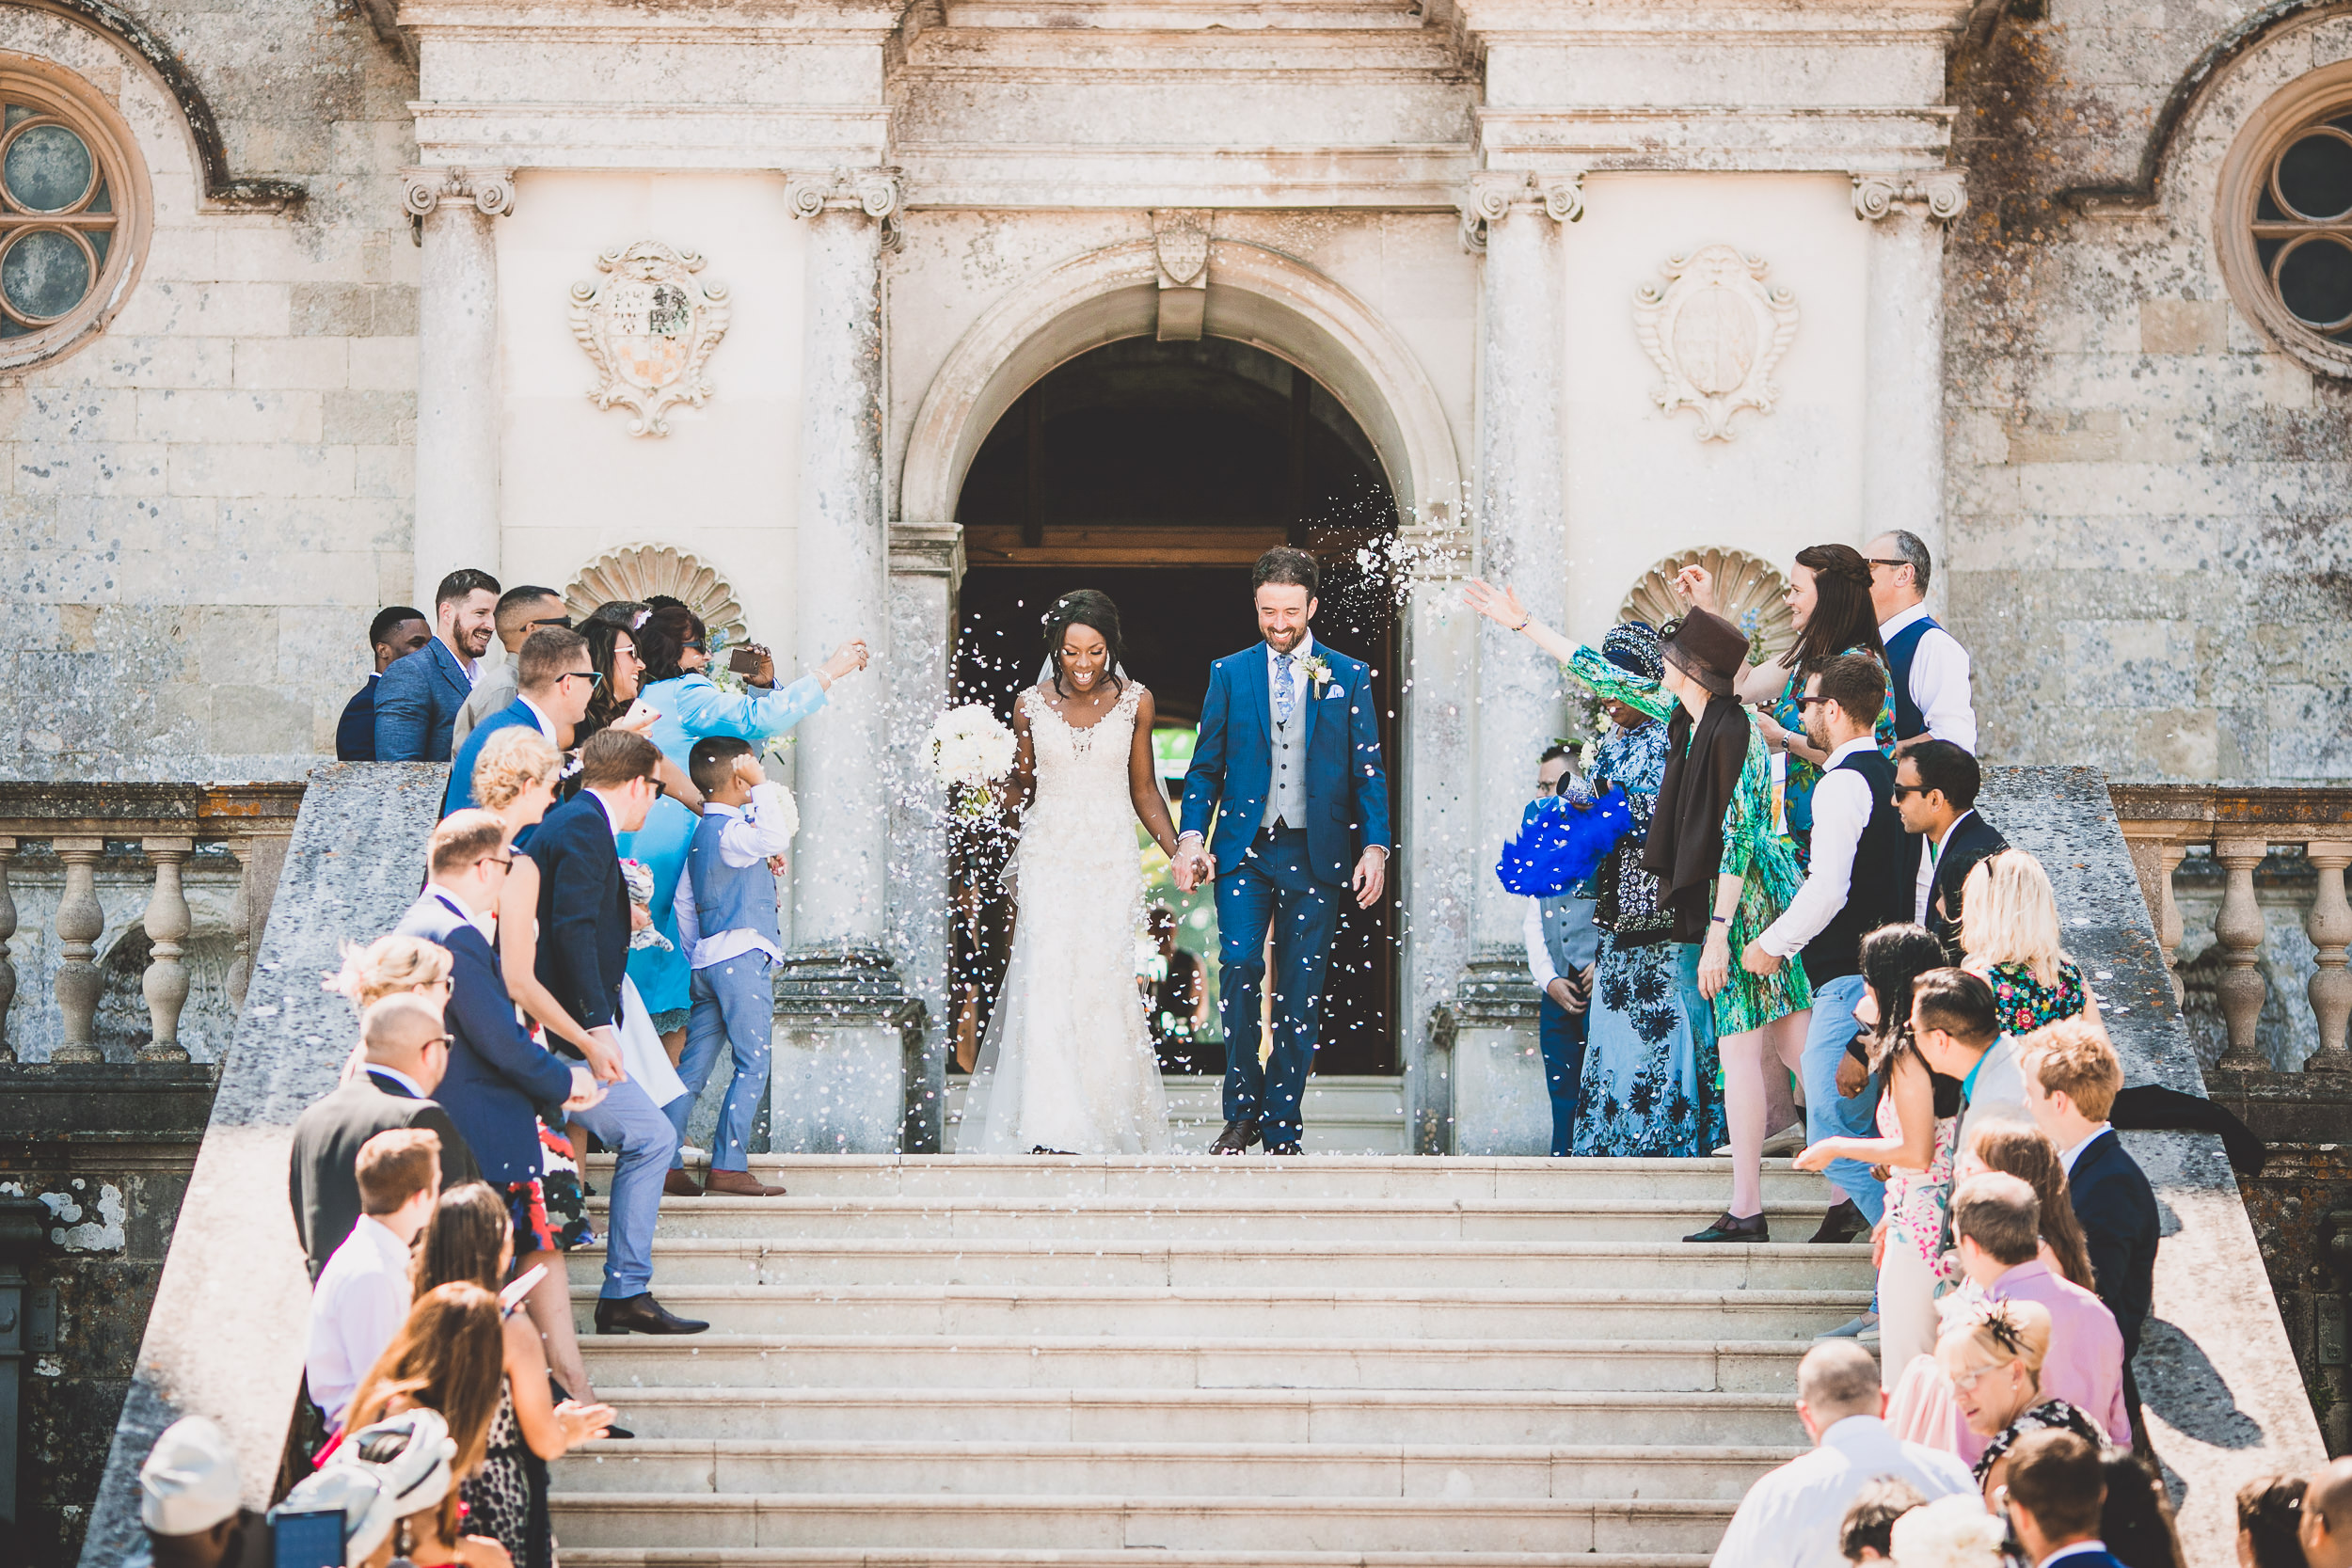 Lulworth Castle Wedding Photography | Amina & David Amina David ss 041